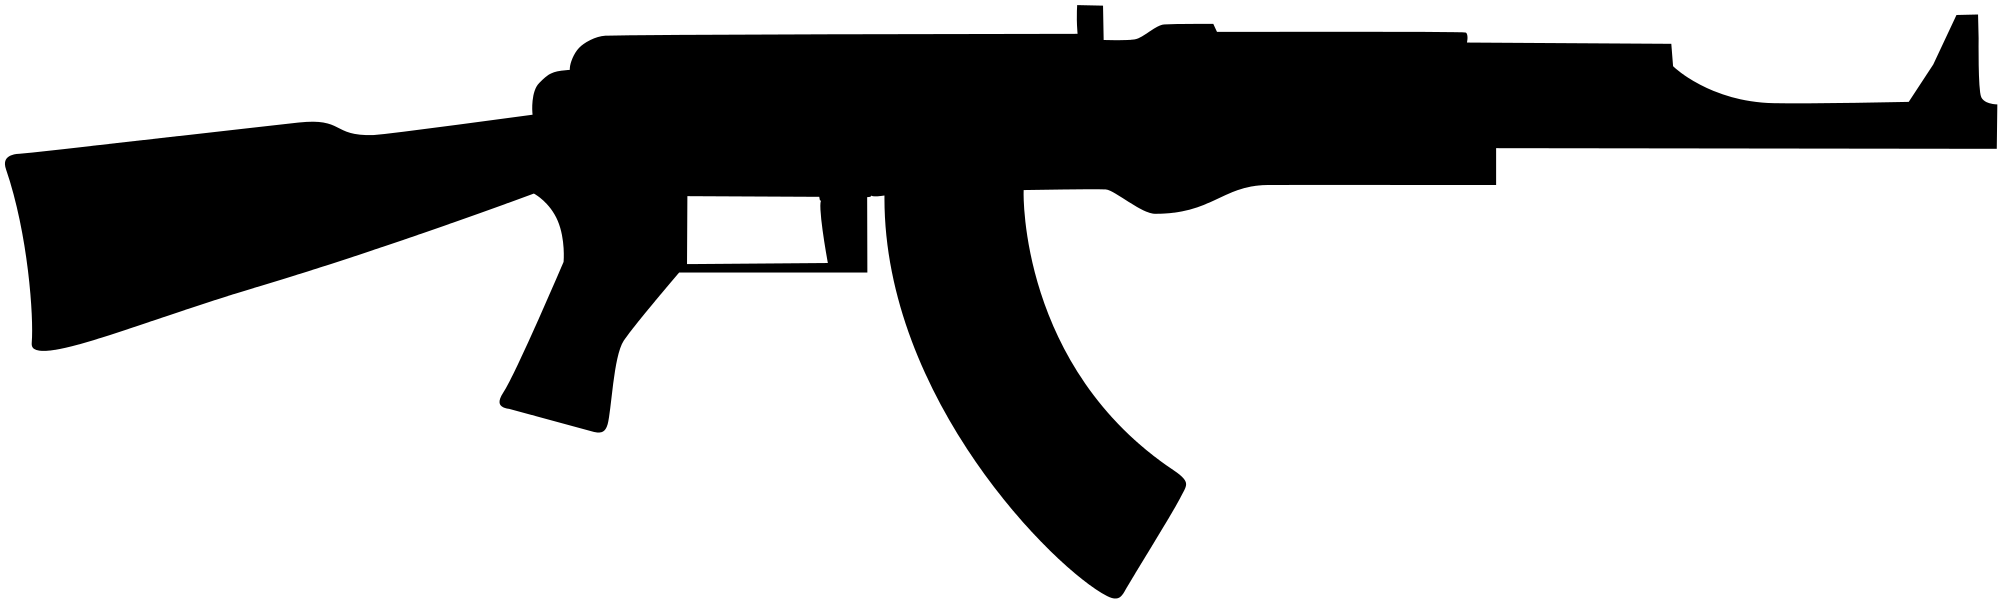 m4 vector transparent